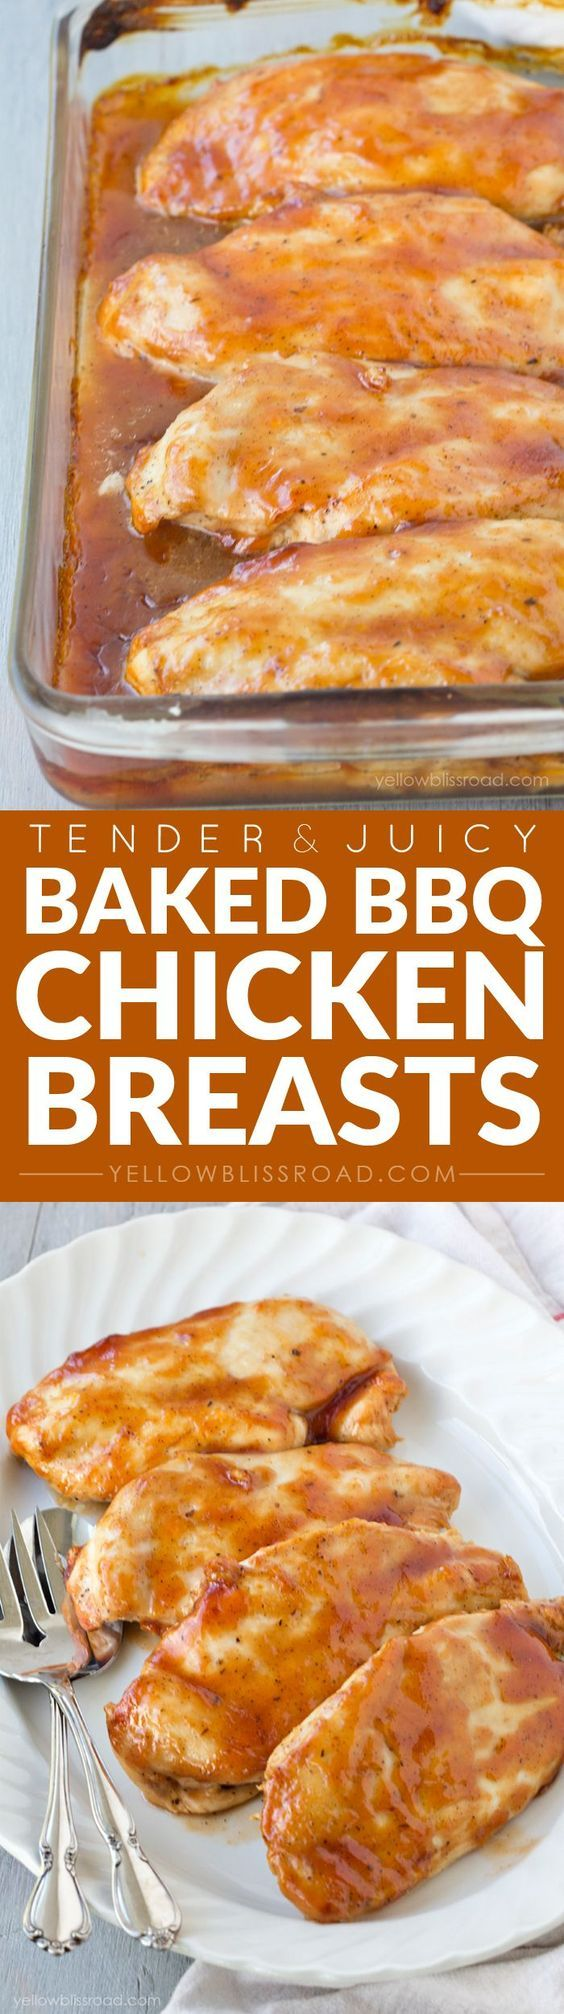 Tender and Juicy Oven Baked Barbecue Chicken Breasts